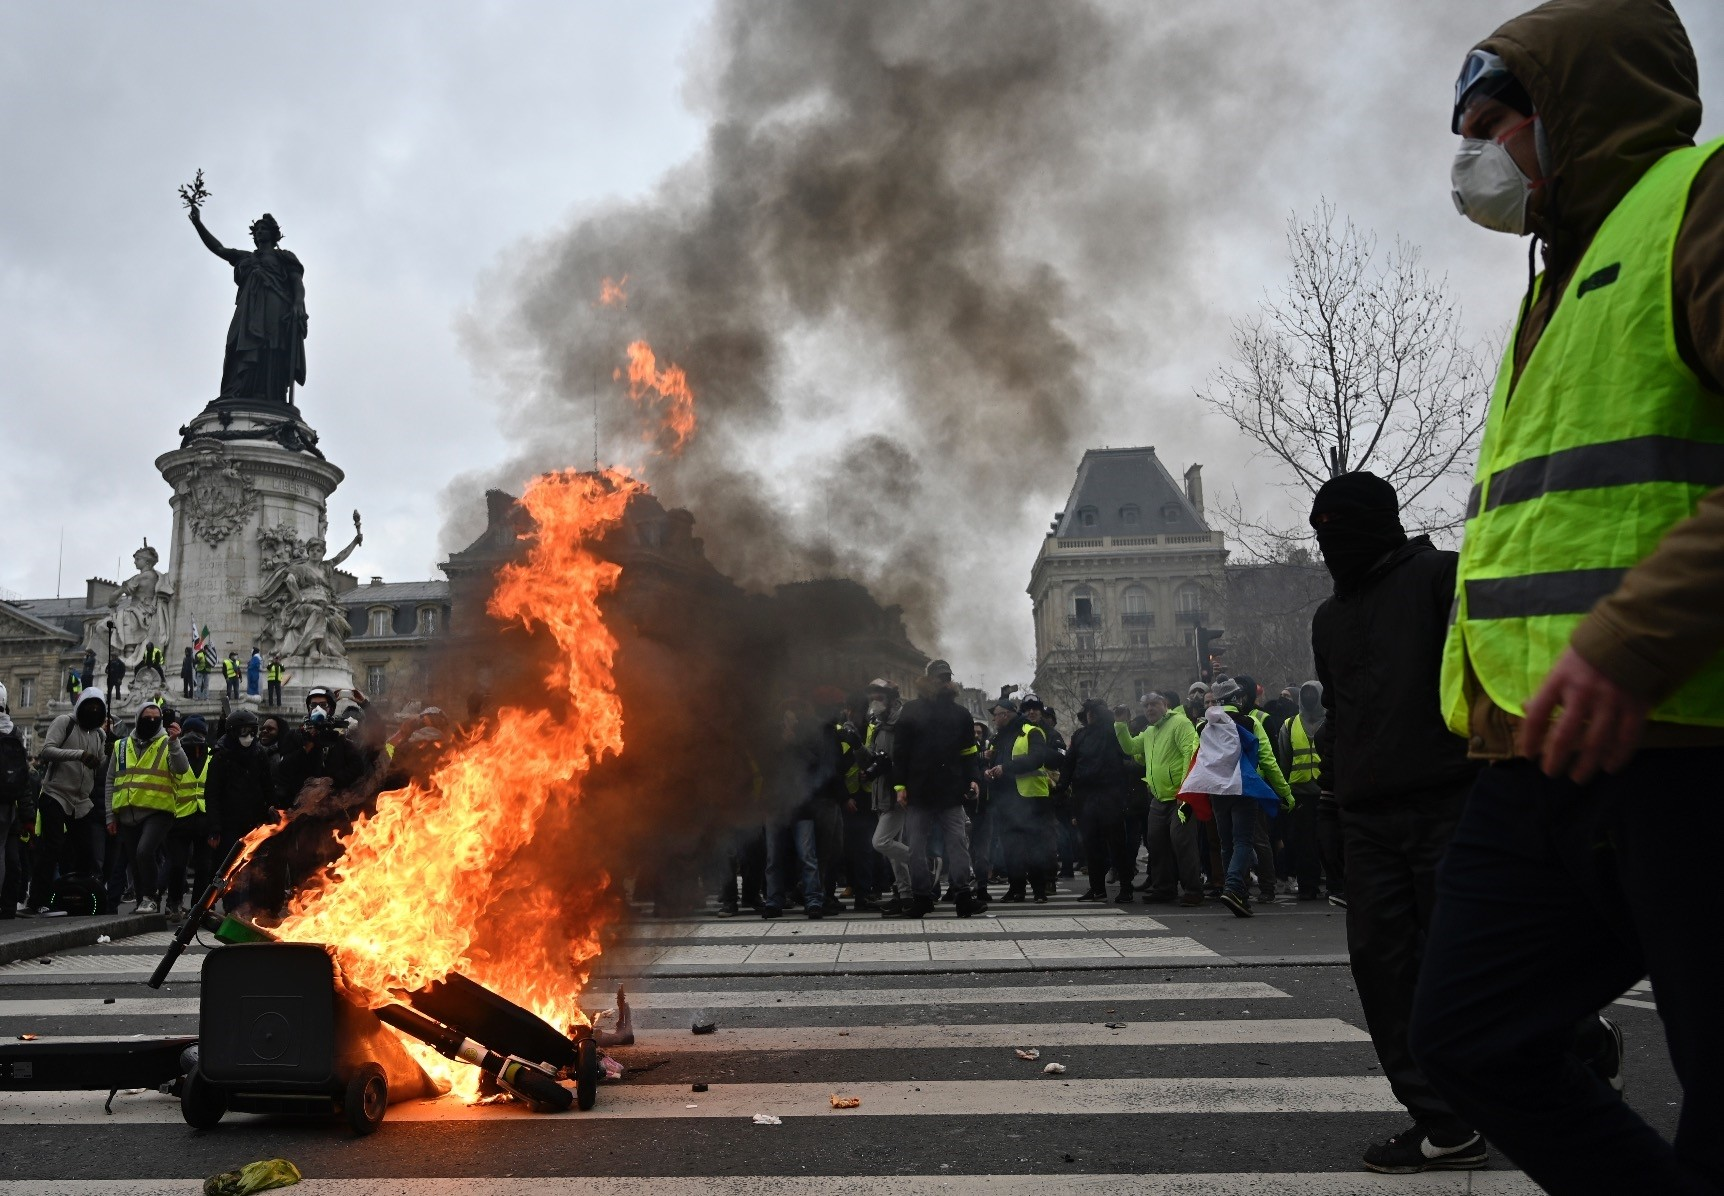 u2018Yellow Vestu2019 protests have been held for a dozen weekends since November in response to rising fuel taxes and President Emmanuel Macron's perceived anti-middle and working class policies. The Square of the Republic, Paris, Feb. 2, 2019.